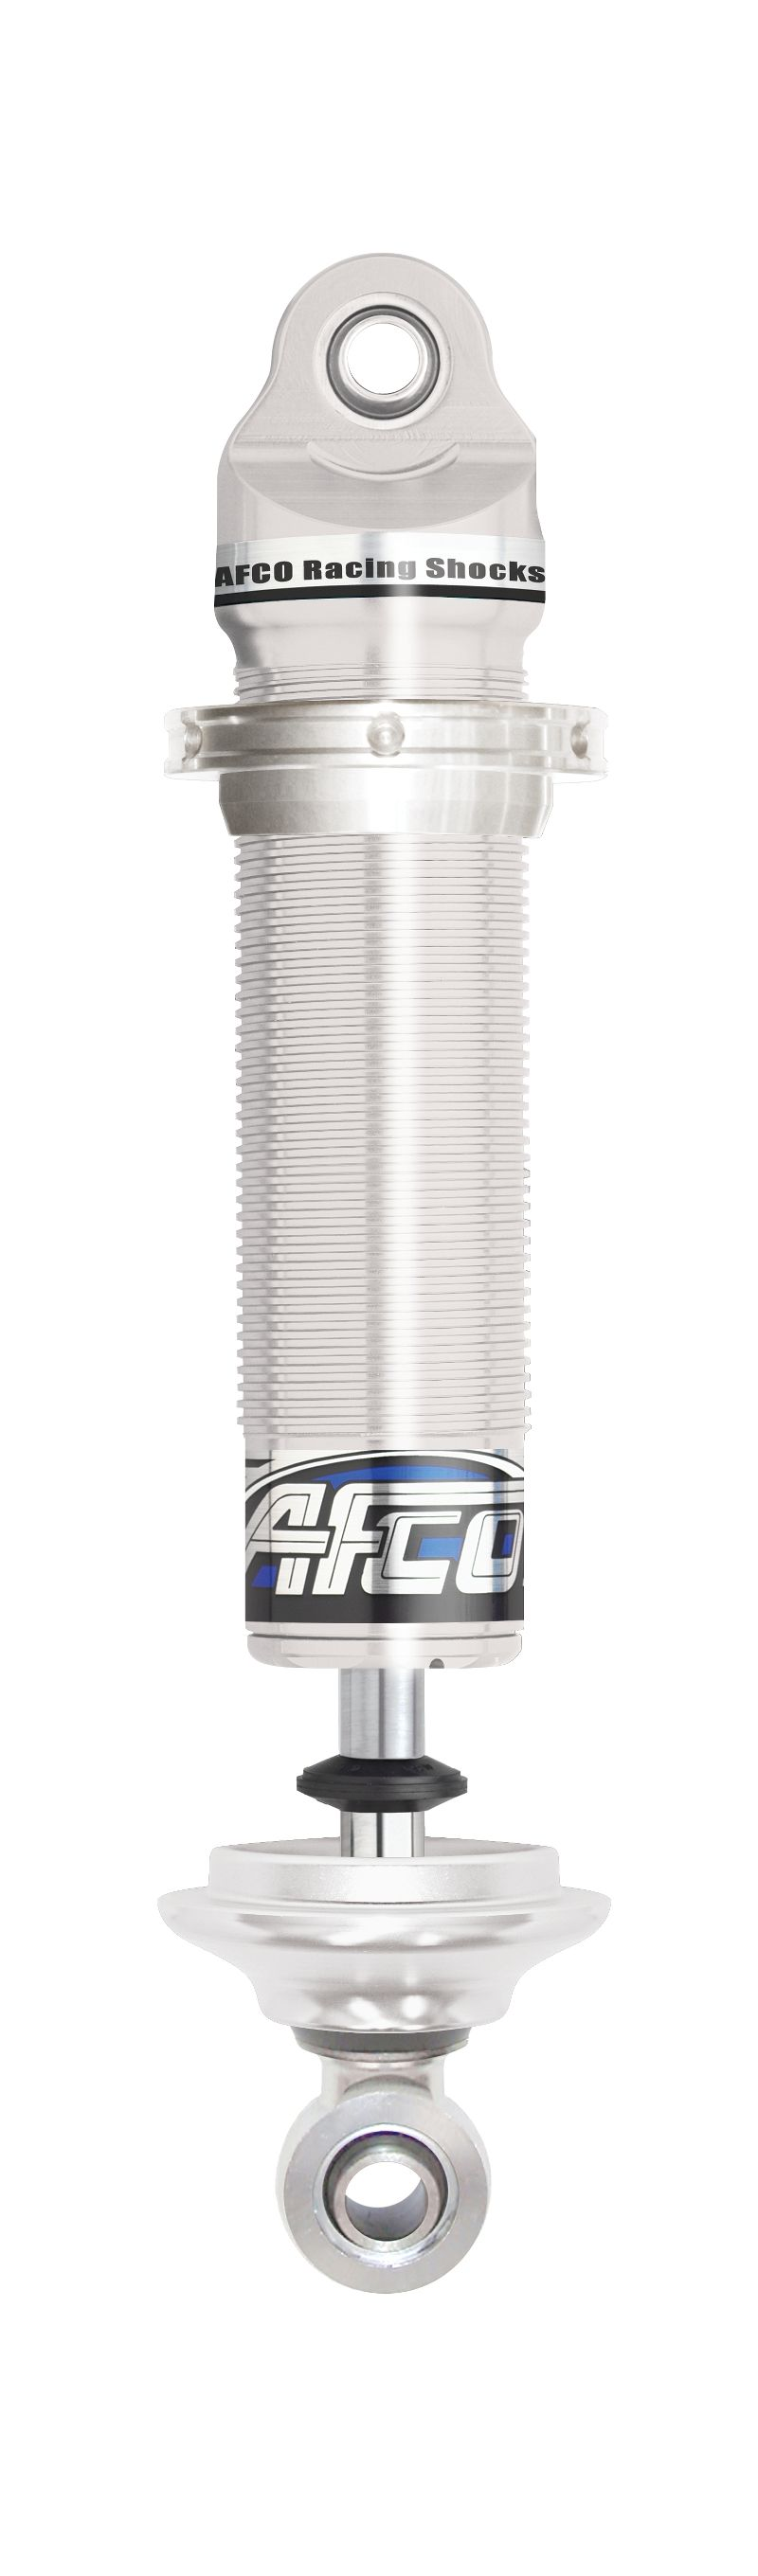 Aluminum Shock Twin Tube 13 Series Pro Touring w/ Coil Over Kit 14 Inch Ext, 5/8 Inch Bearing